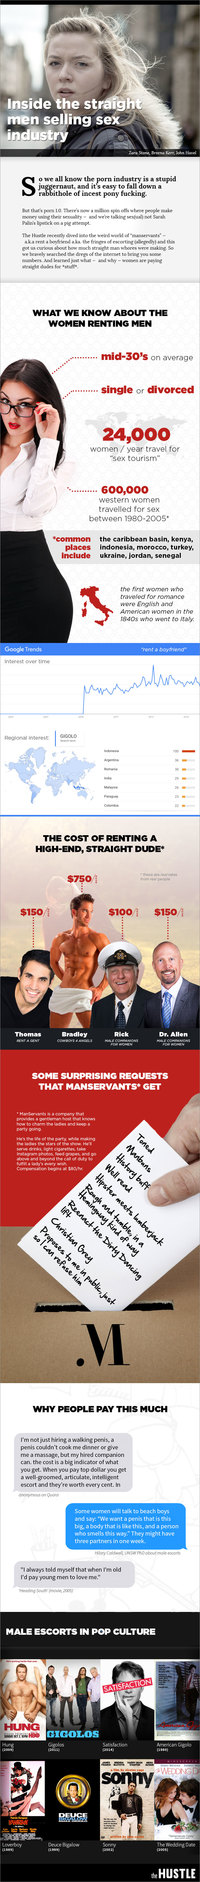 straight men photos assets sexinfographic inside straight men selling industry